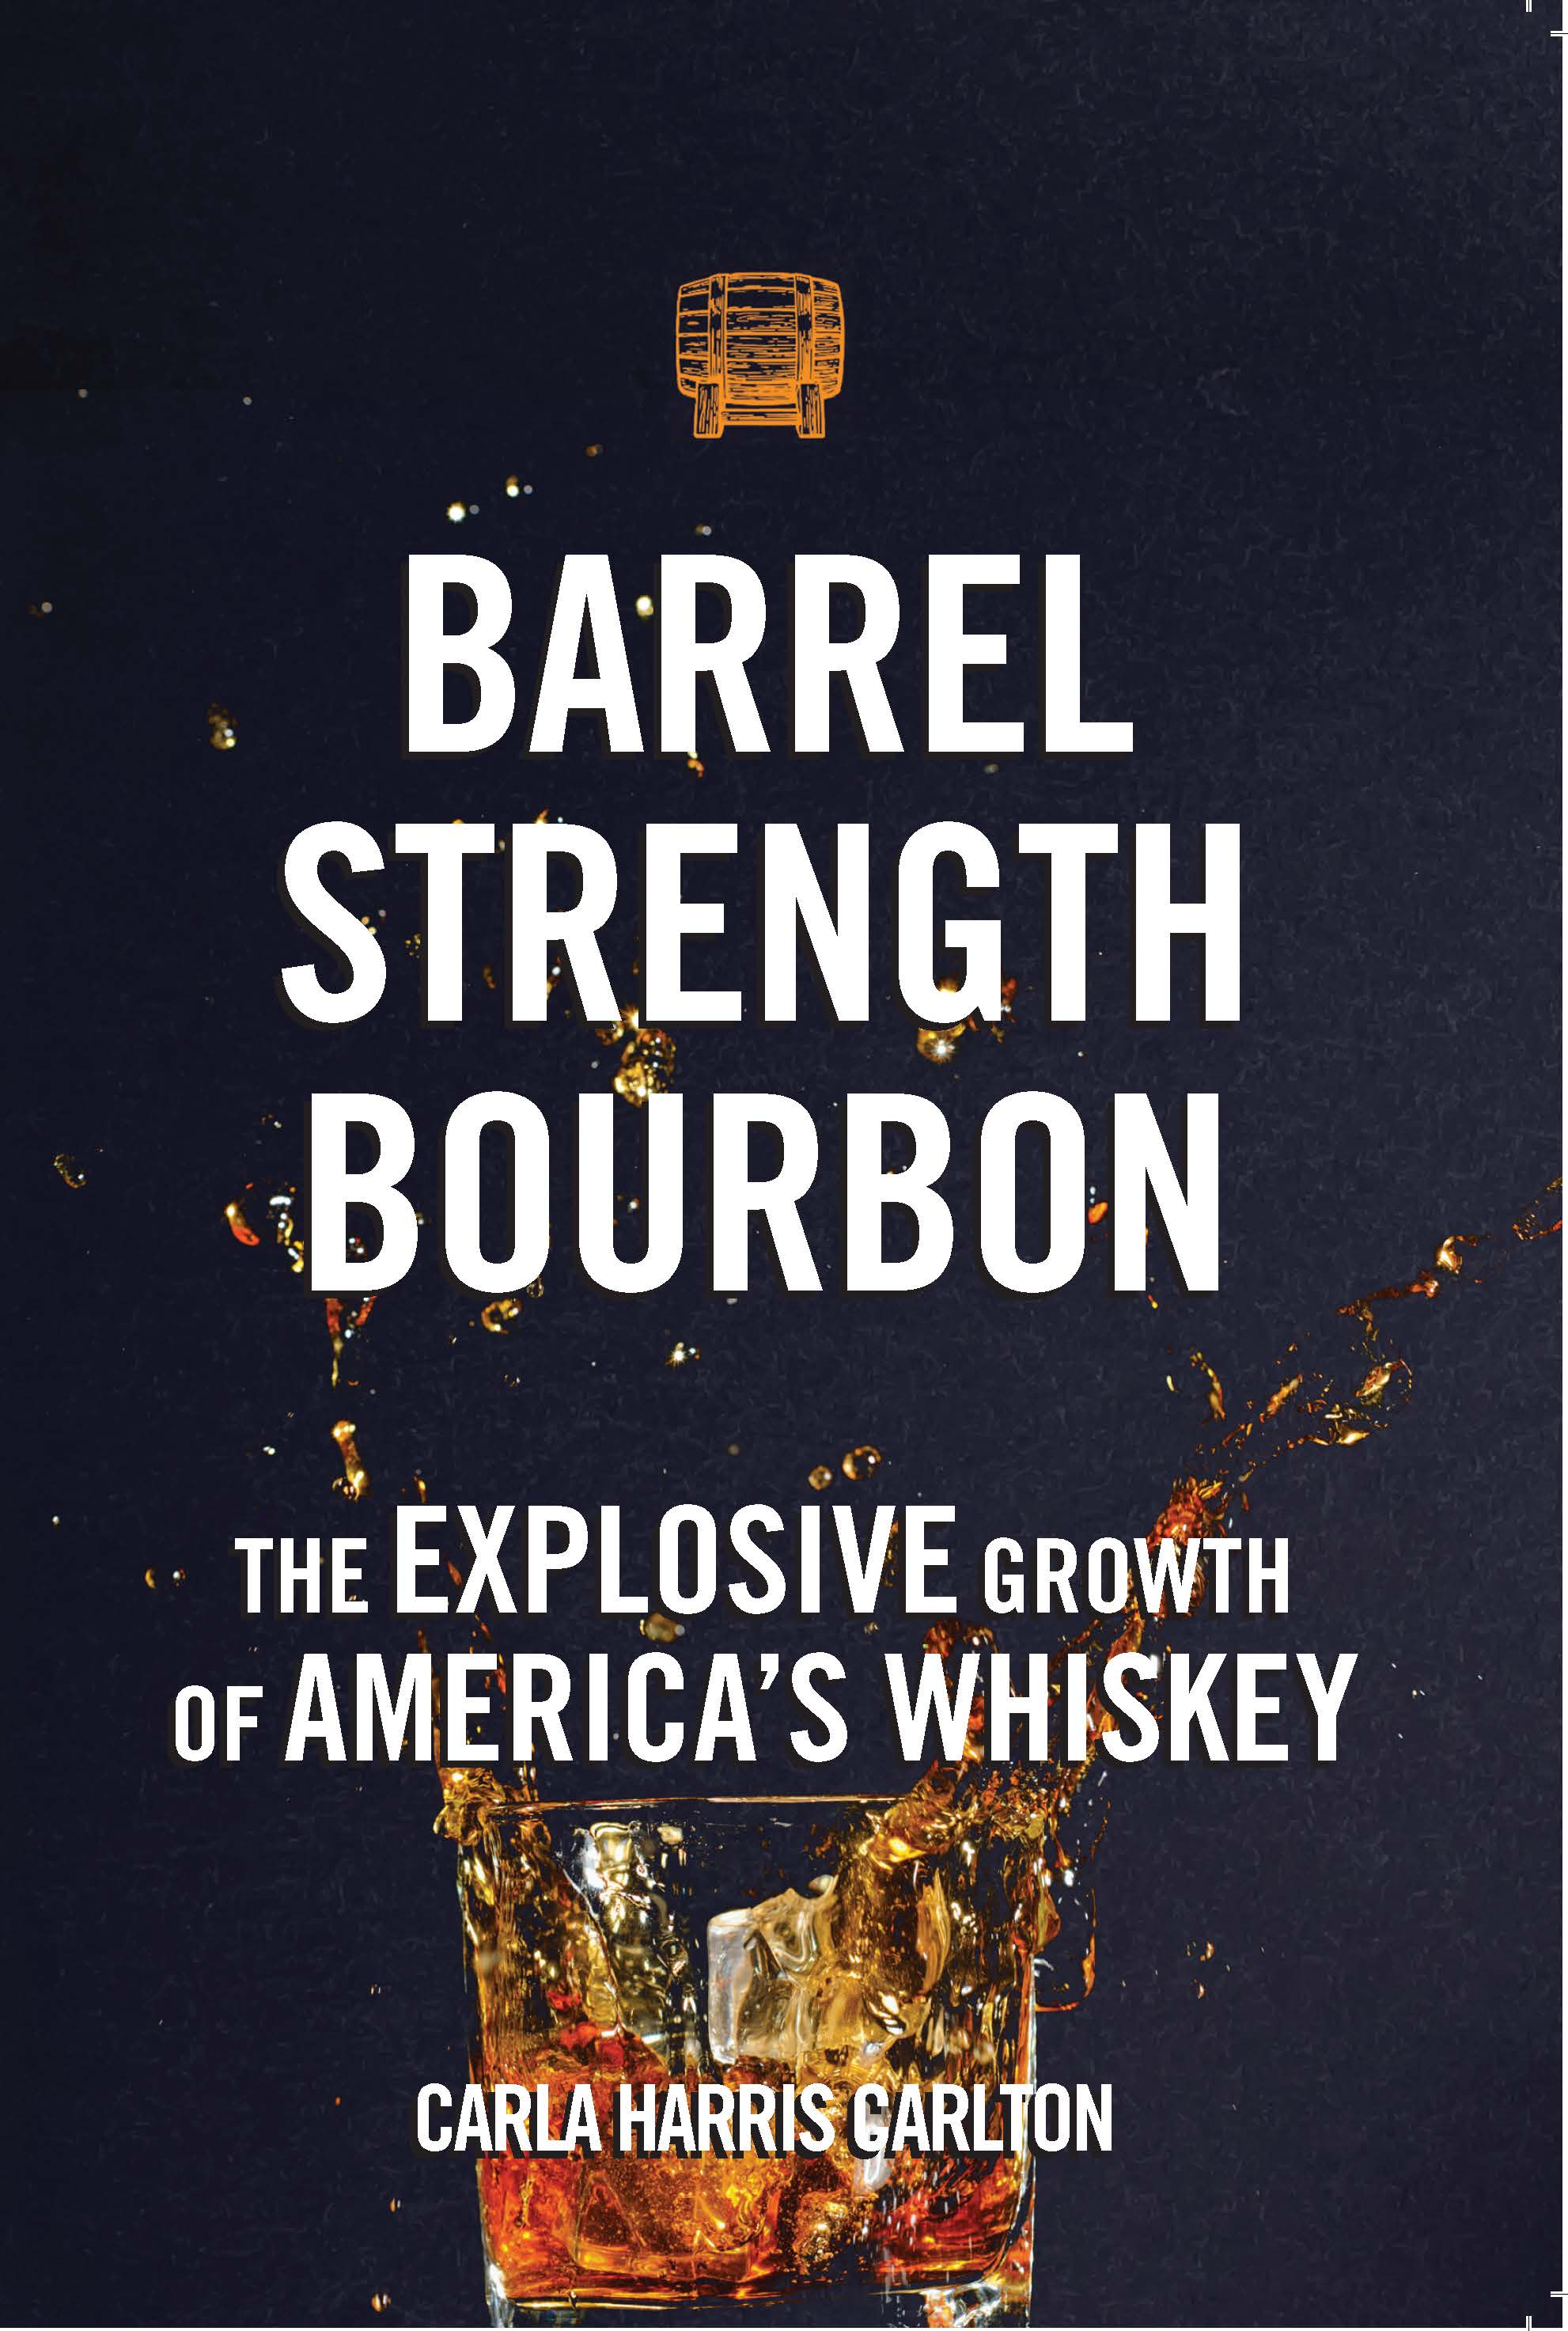 BarrelStrength_COVER04-CONST